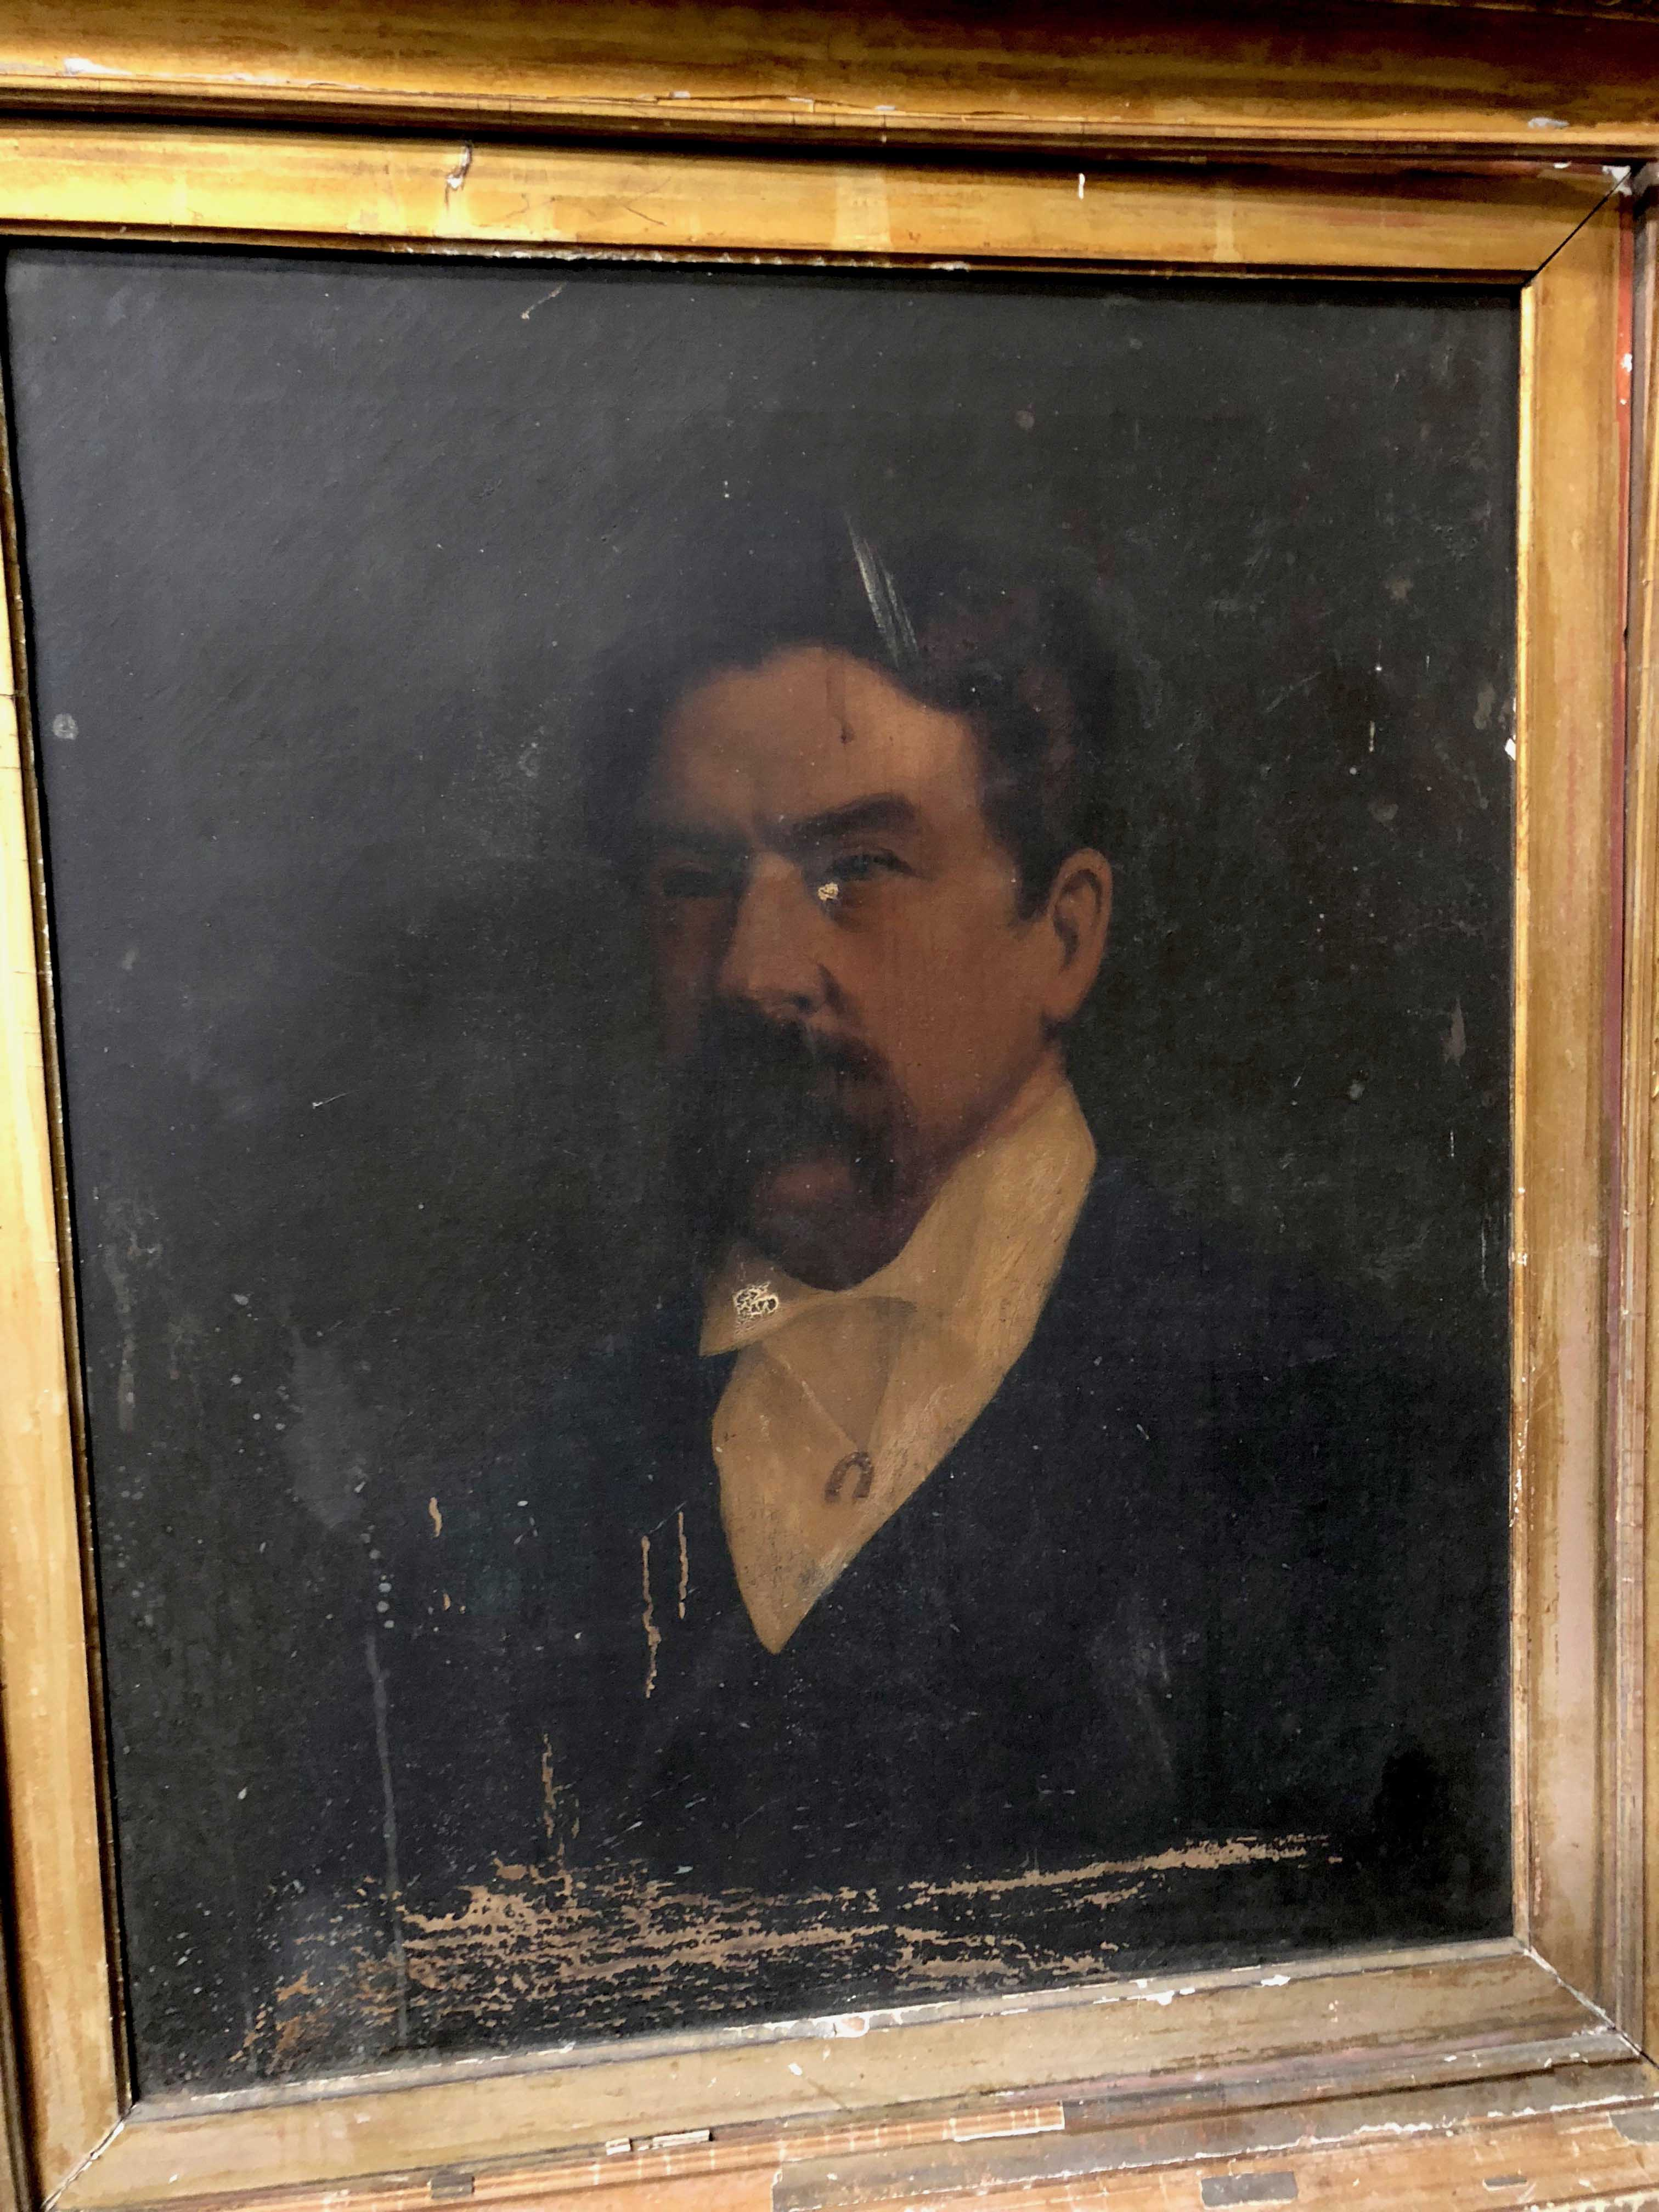 19th century portrait of a gentleman with a horseshoe